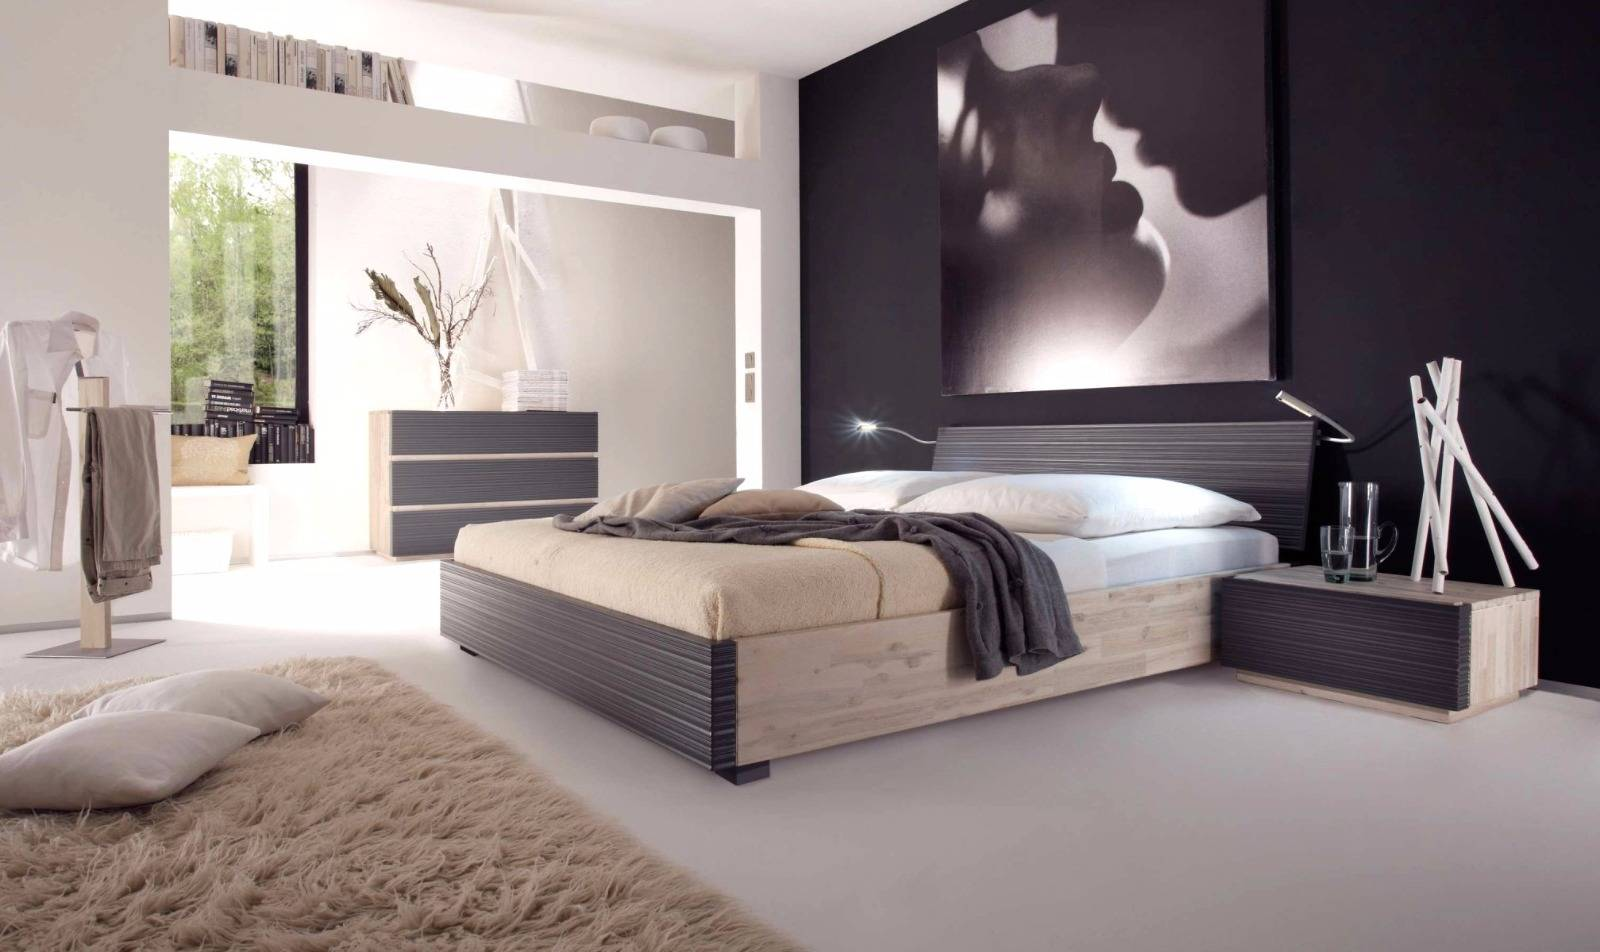 cash literie chez cash literie le meilleur rapport qualit prix matelas sommier boxspring. Black Bedroom Furniture Sets. Home Design Ideas